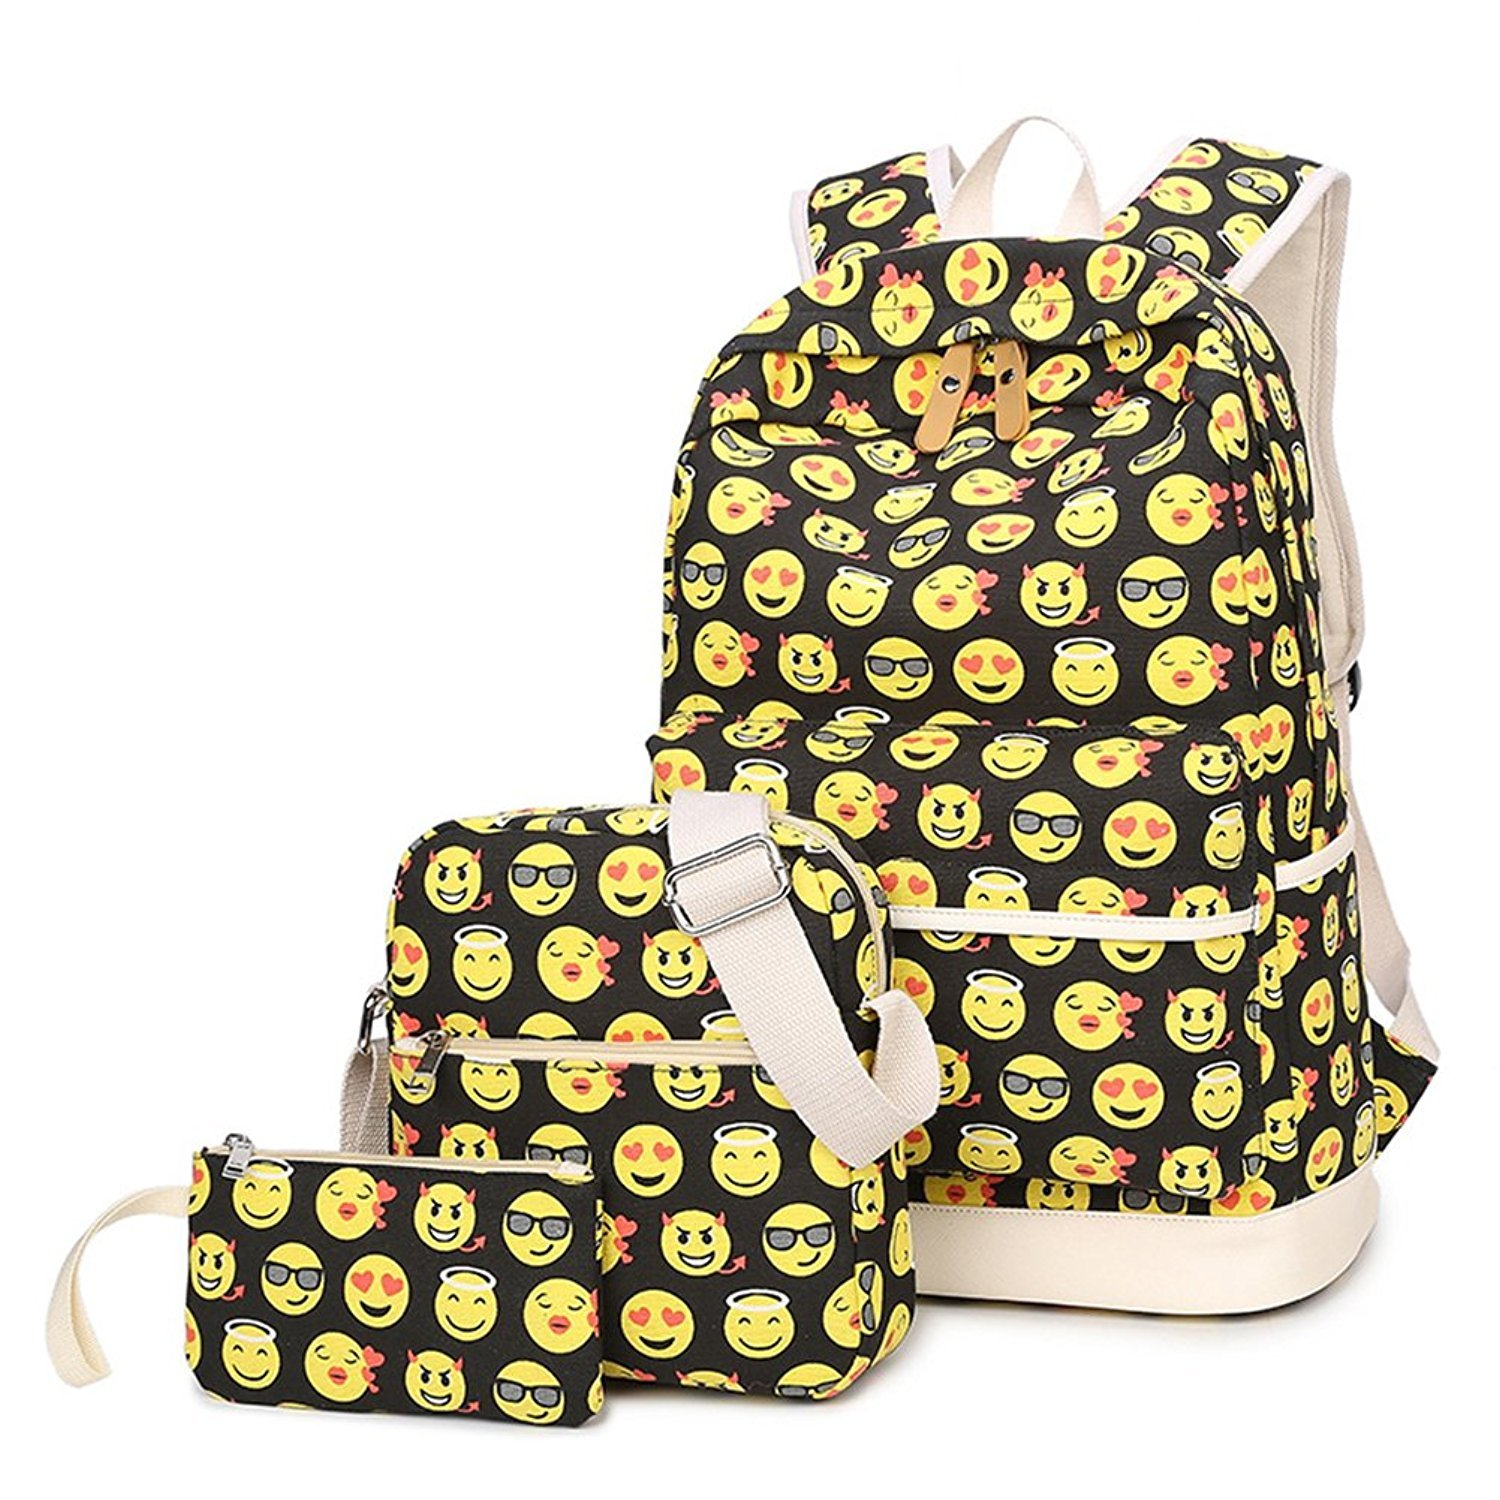 717ej2zpycl. ul1500. 717ej2zpycl. ul1500. Previous. 3Pcs Emoji Backpack  Casual Lightweight Canvas School Backpacks for Teen Girls 57a834285f3ad